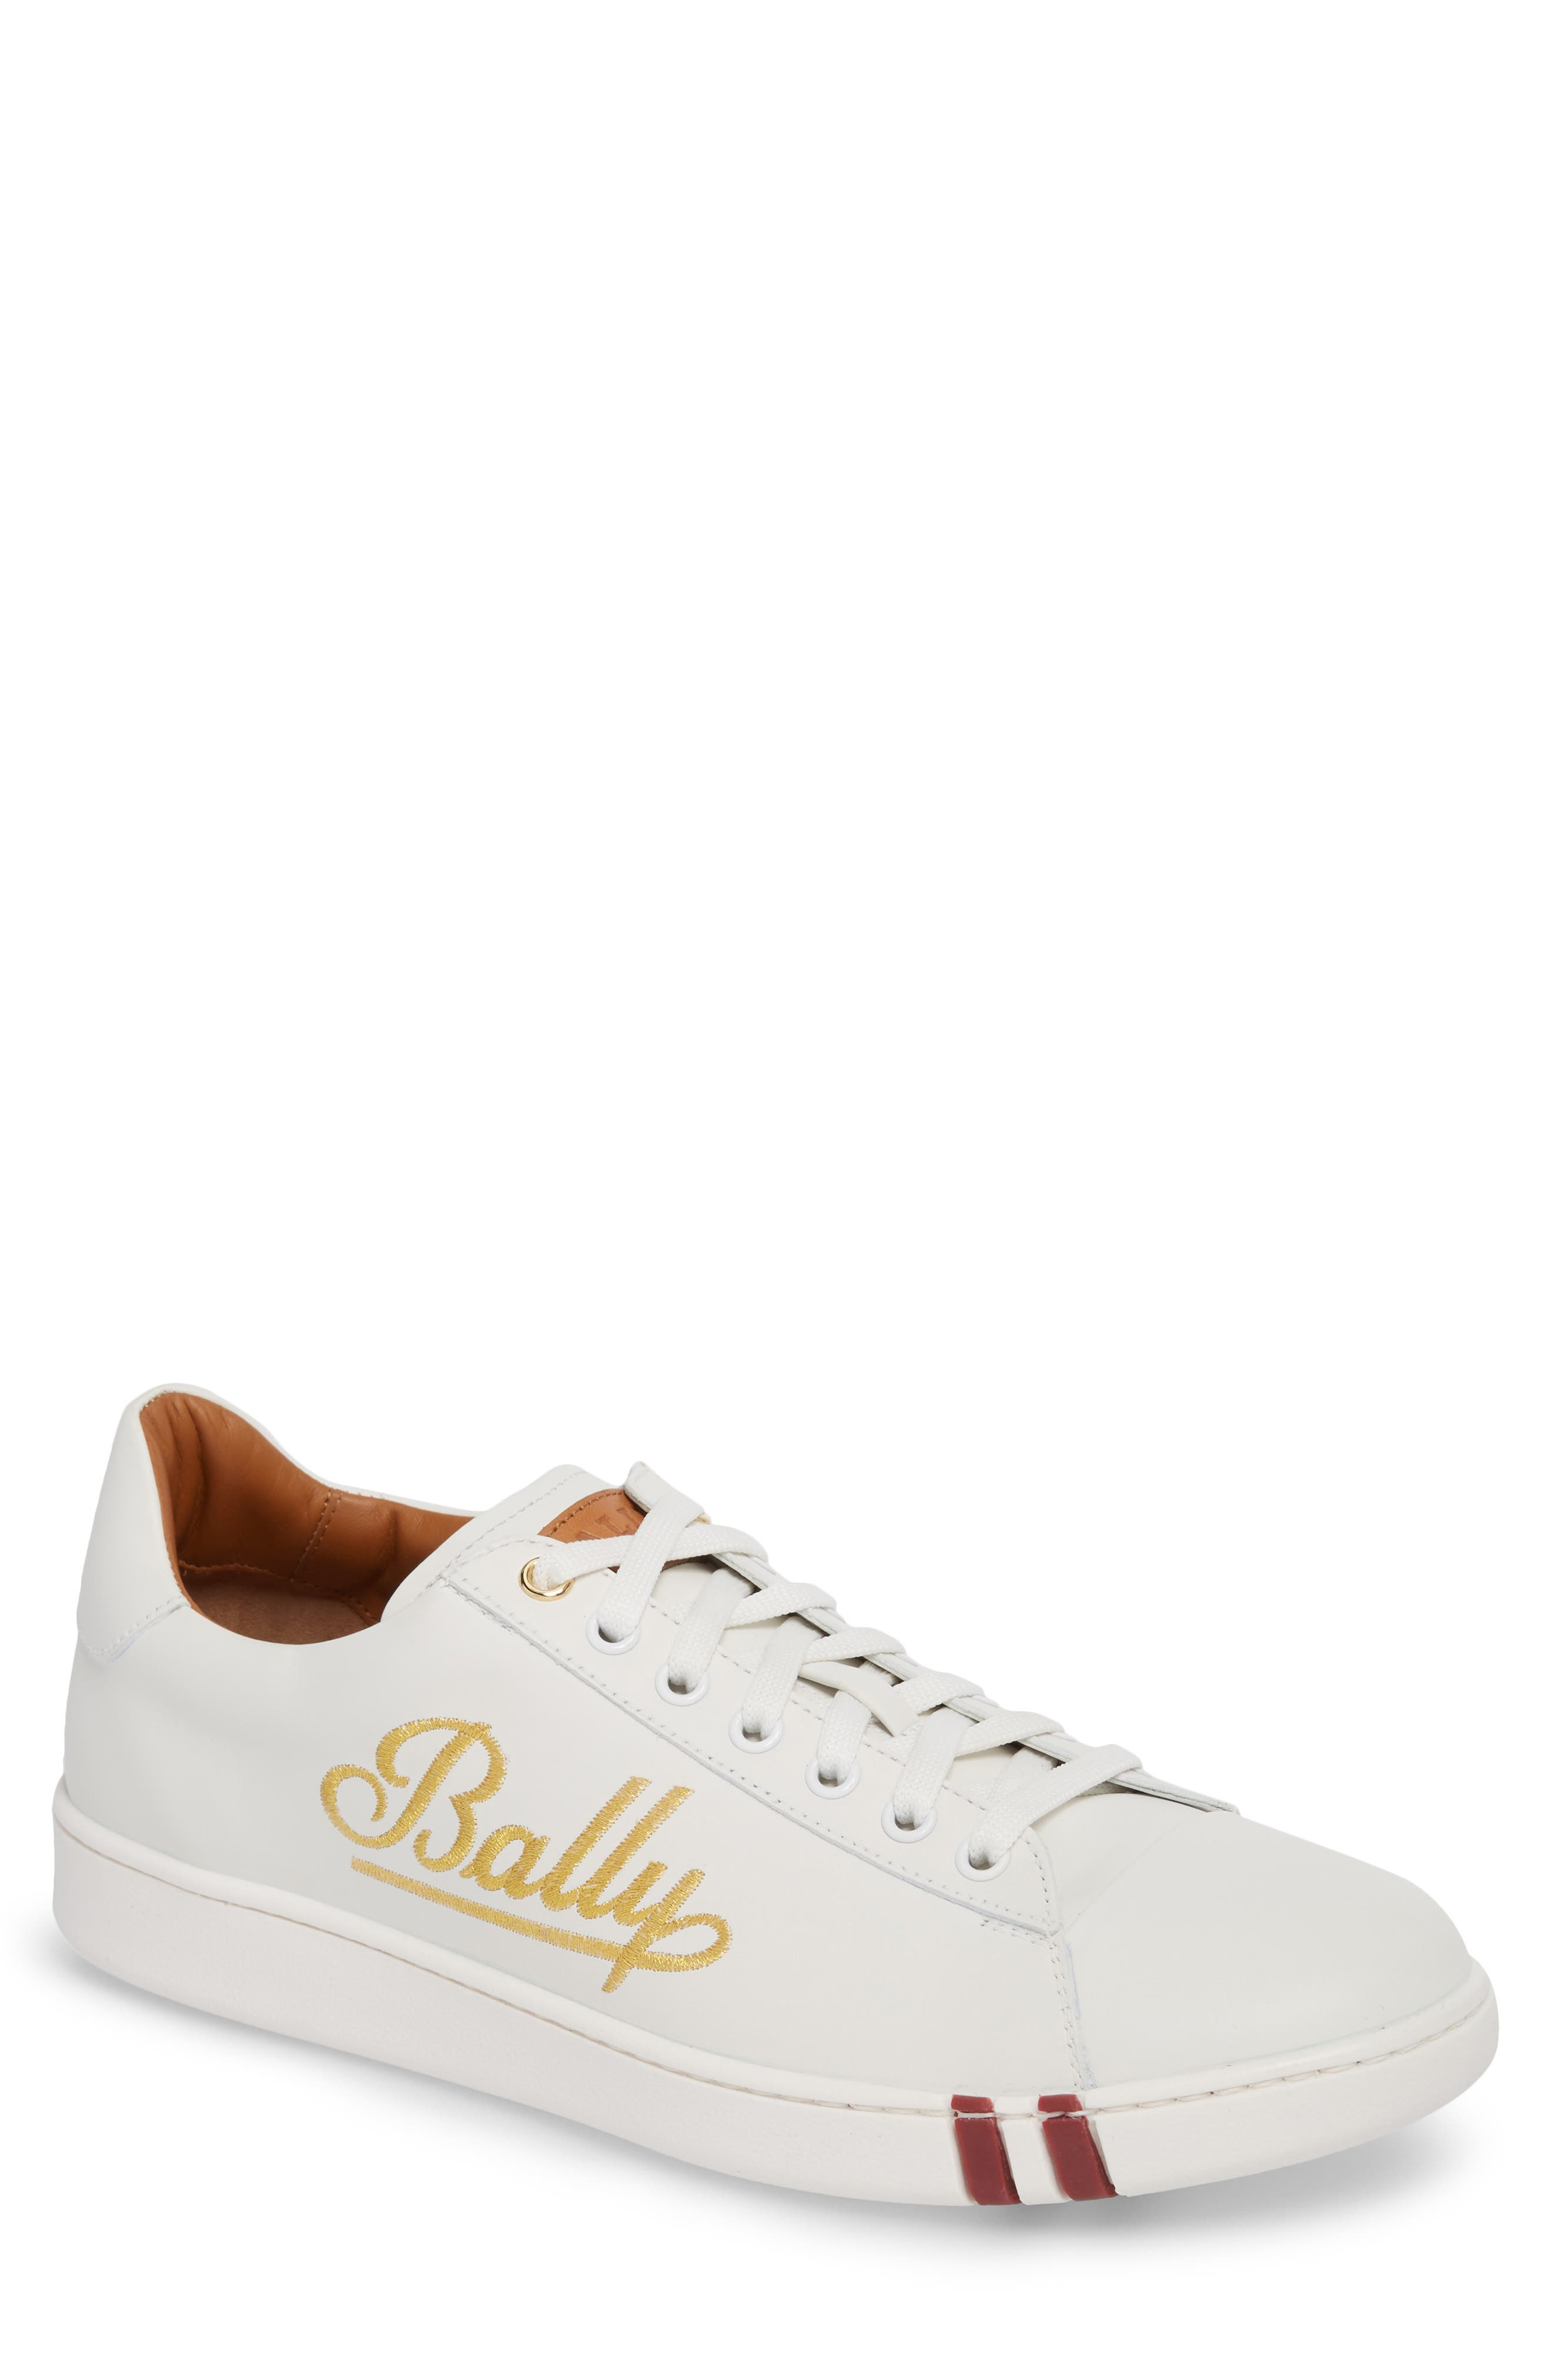 Winston Low Top Sneaker,                         Main,                         color, WHITE